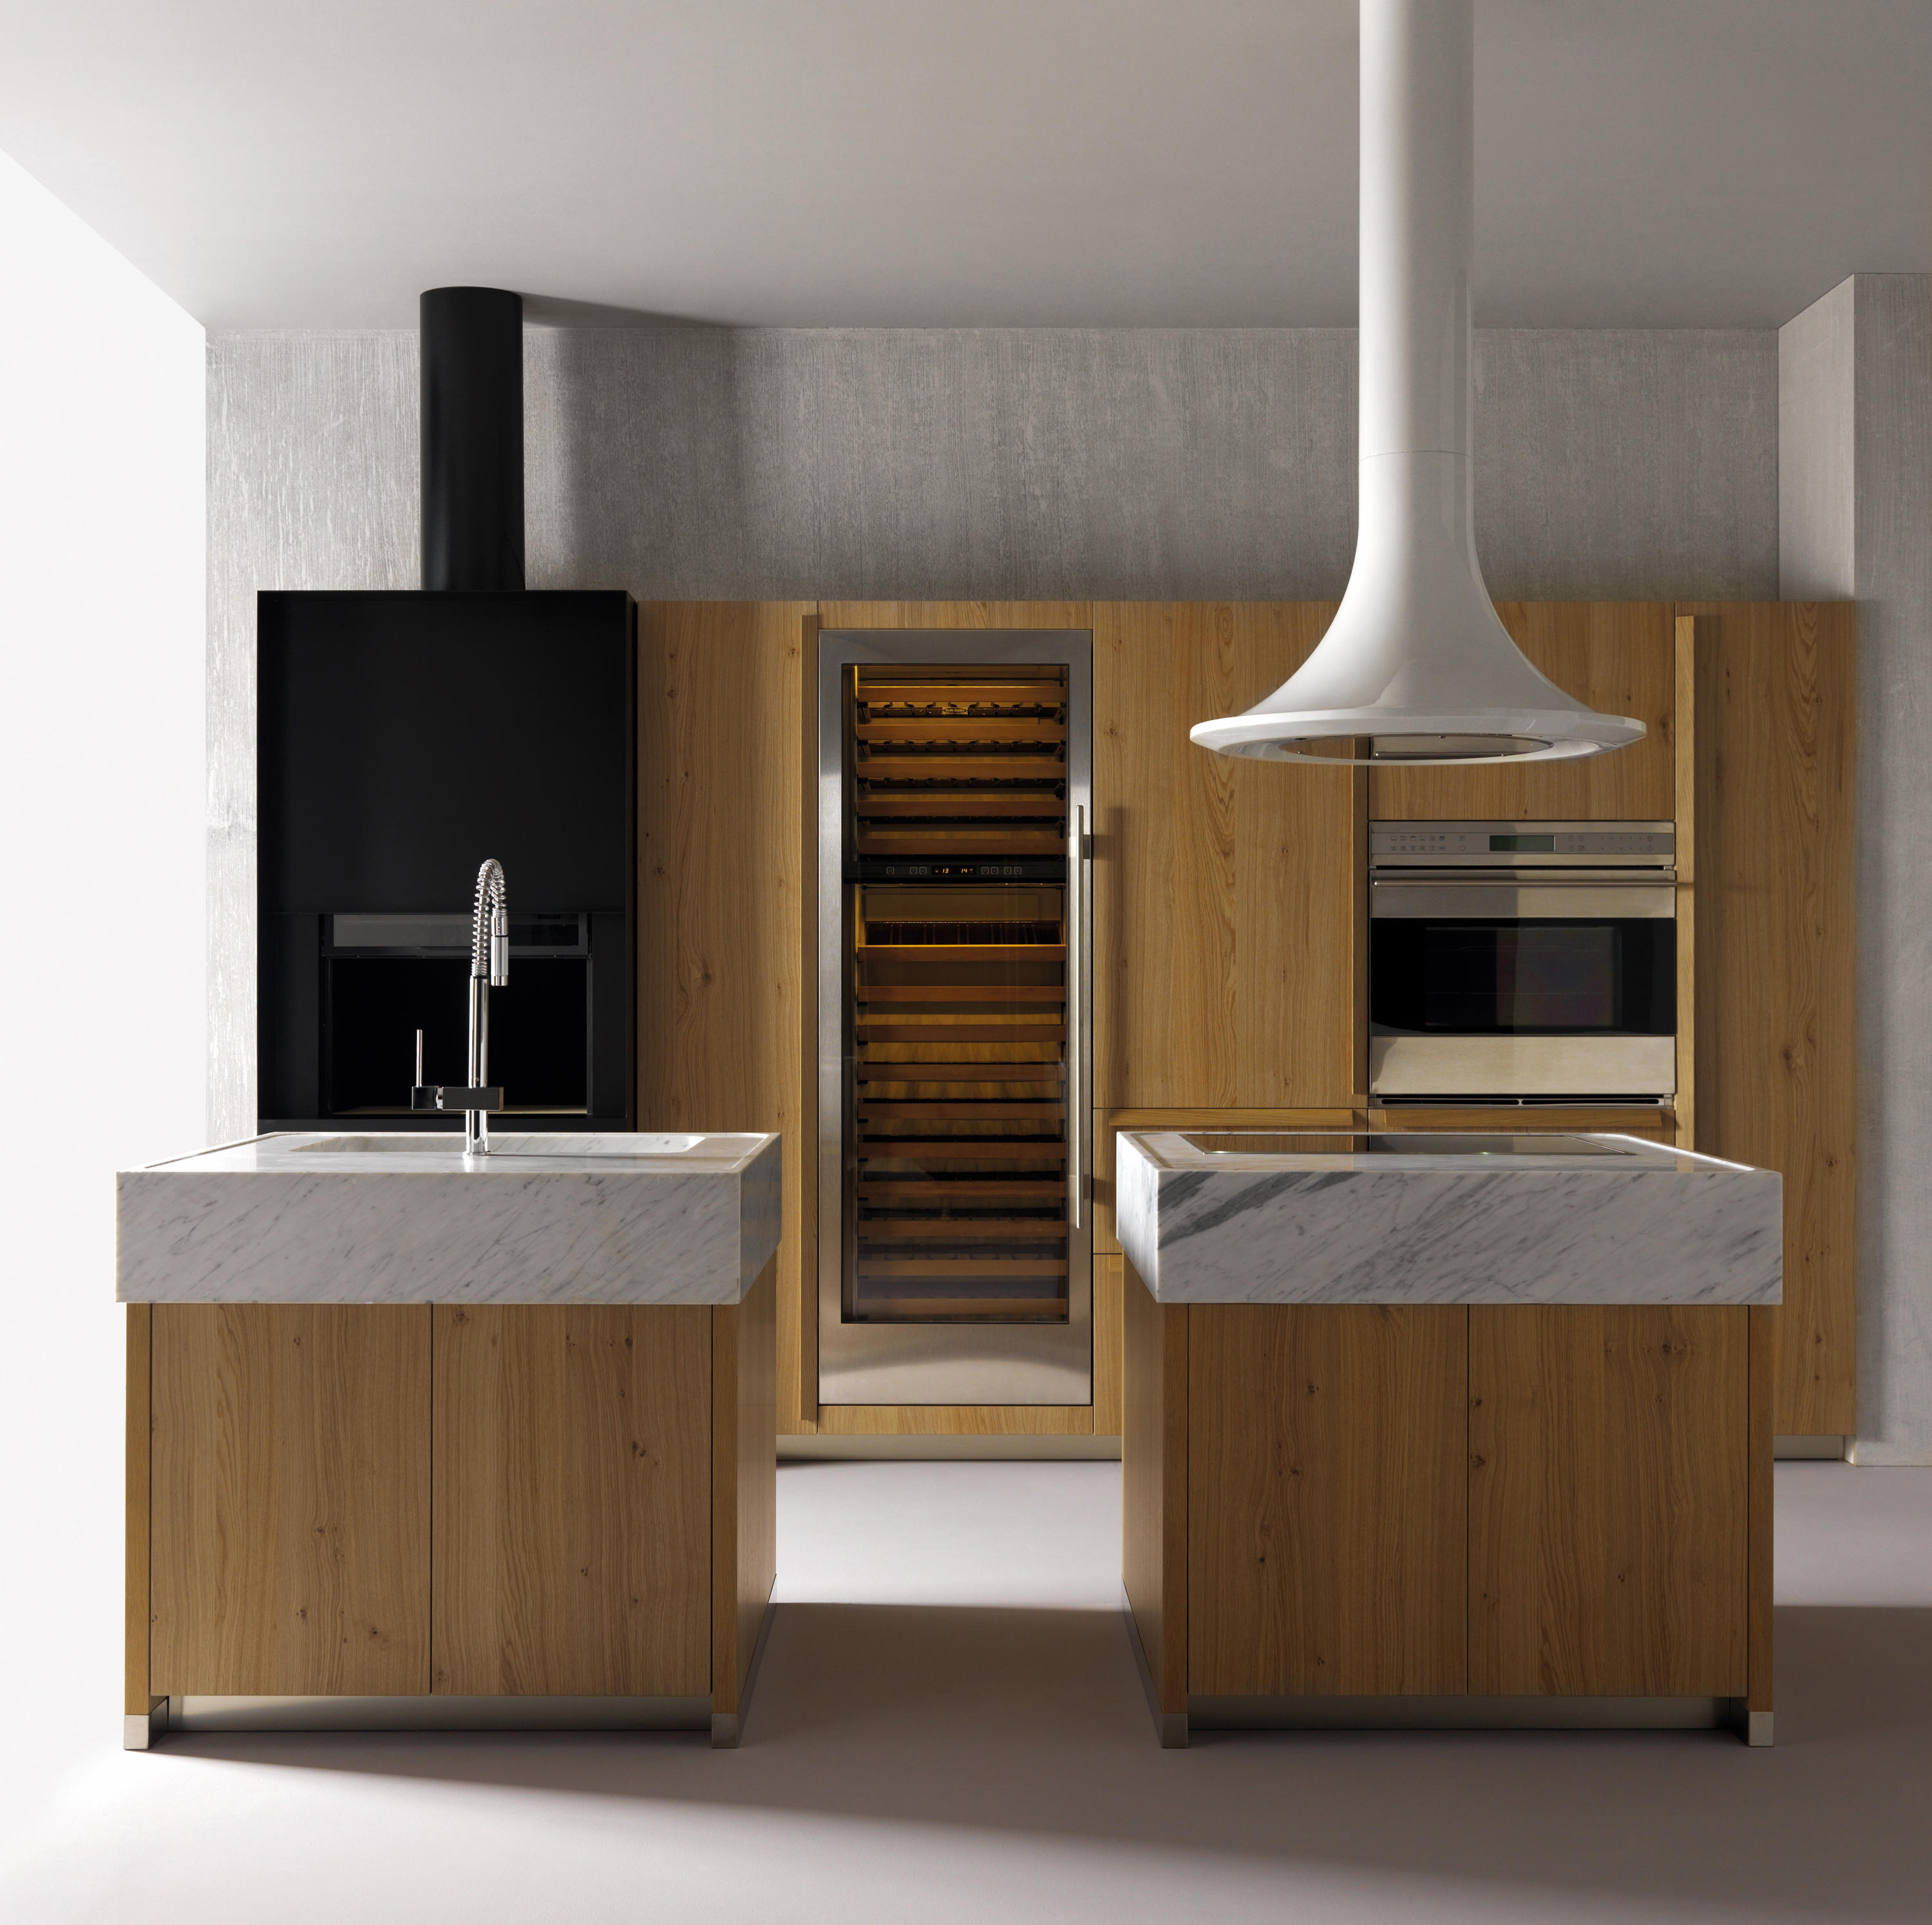 BK1 - Fitted kitchens from Effeti Industrie SRL | Architonic